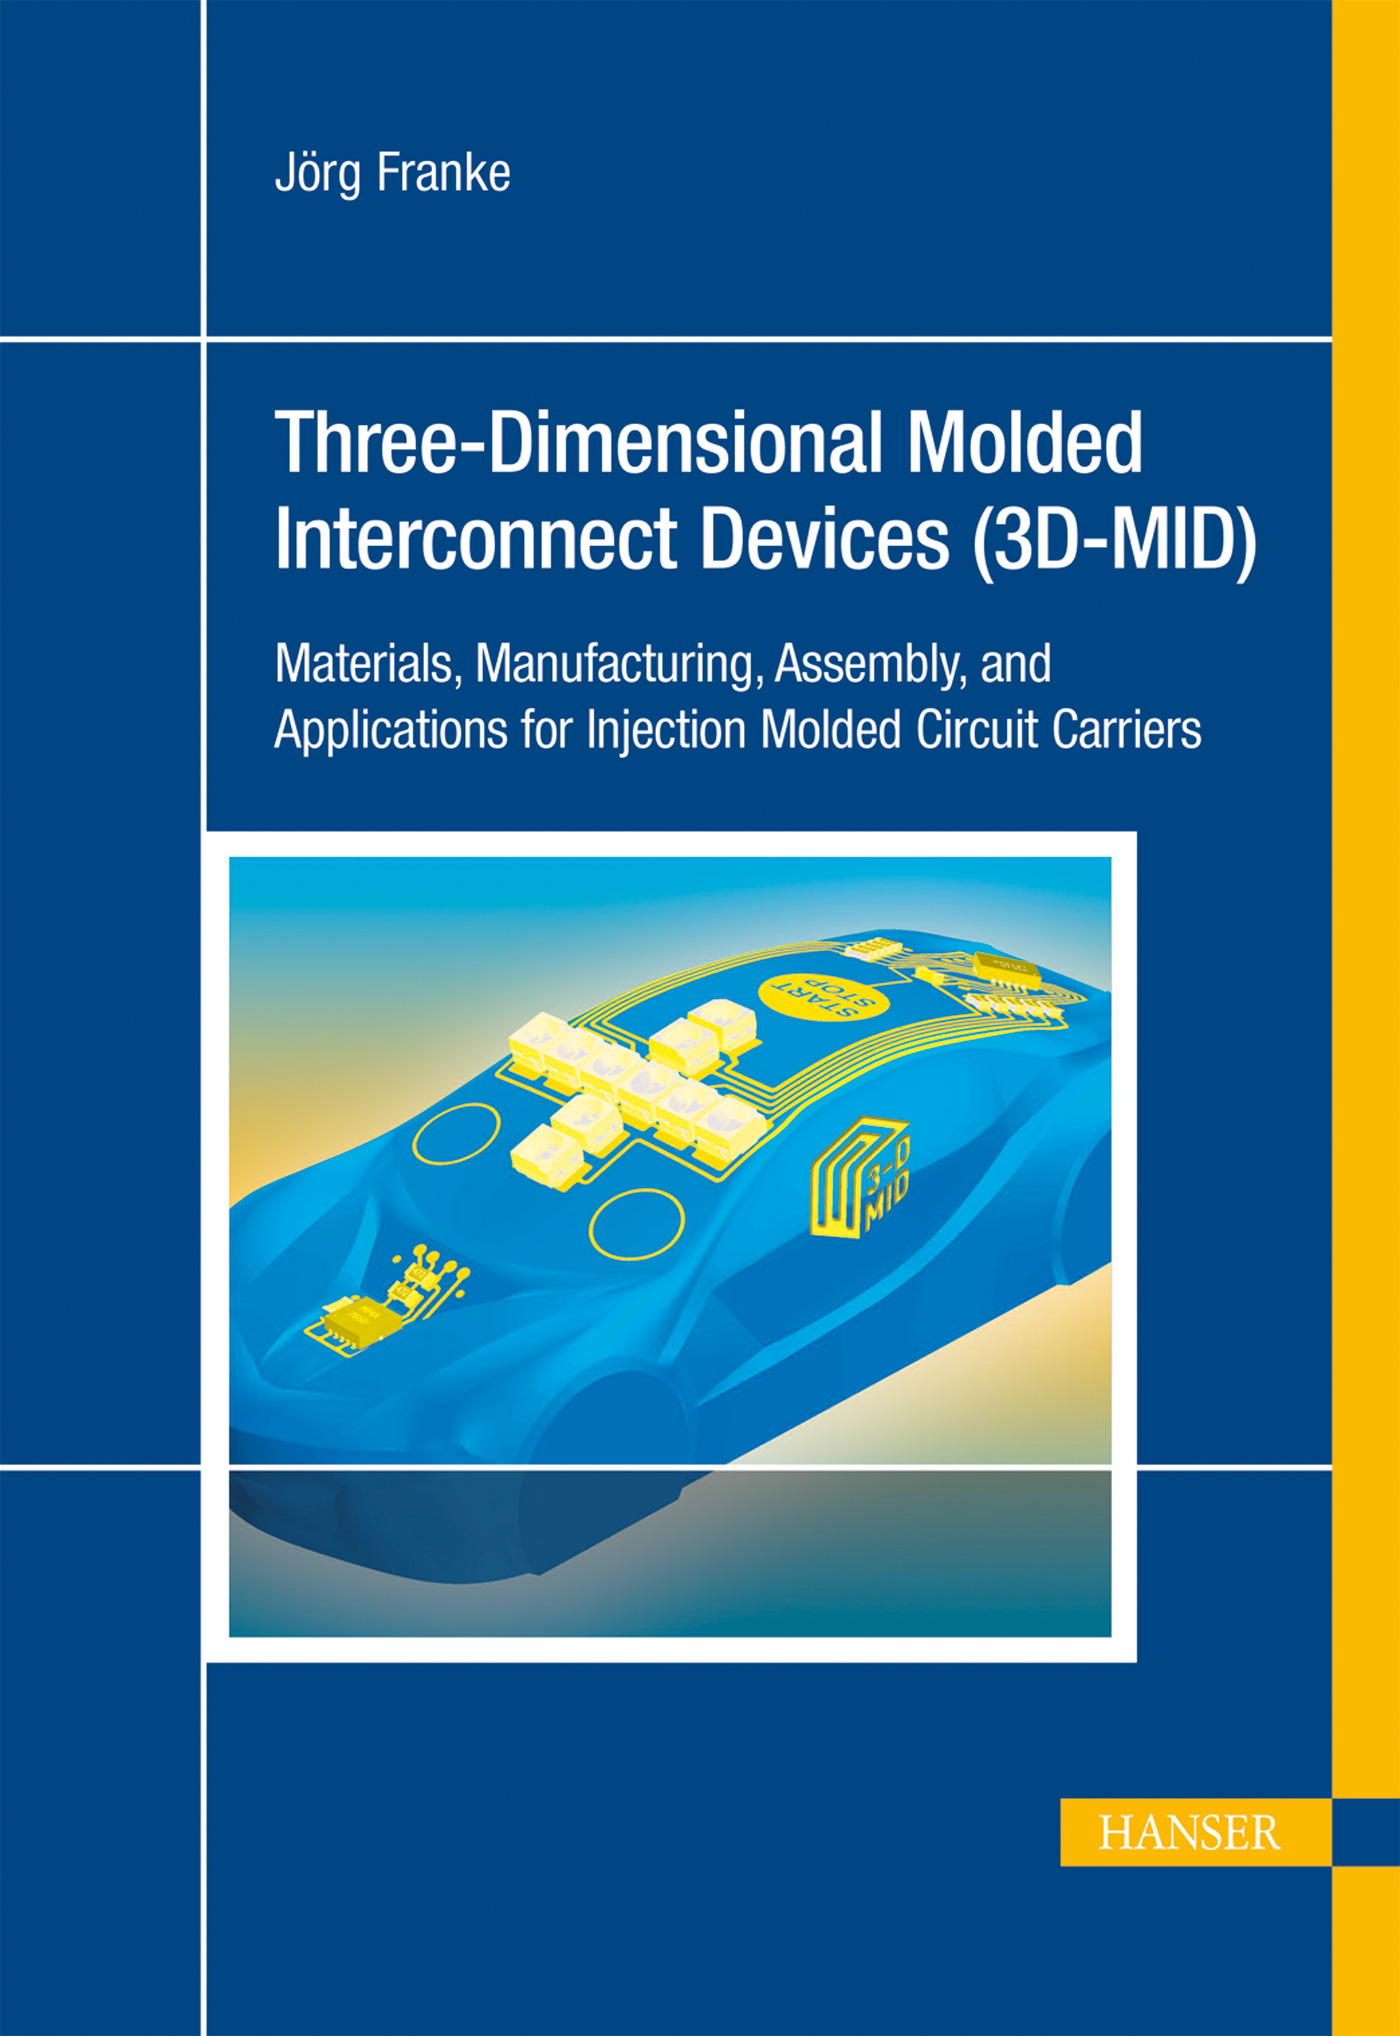 Three-Dimensional Molded Interconnect Devices (3D-MID): Materials, Manufacturing, Assembly and Applications for Injectio